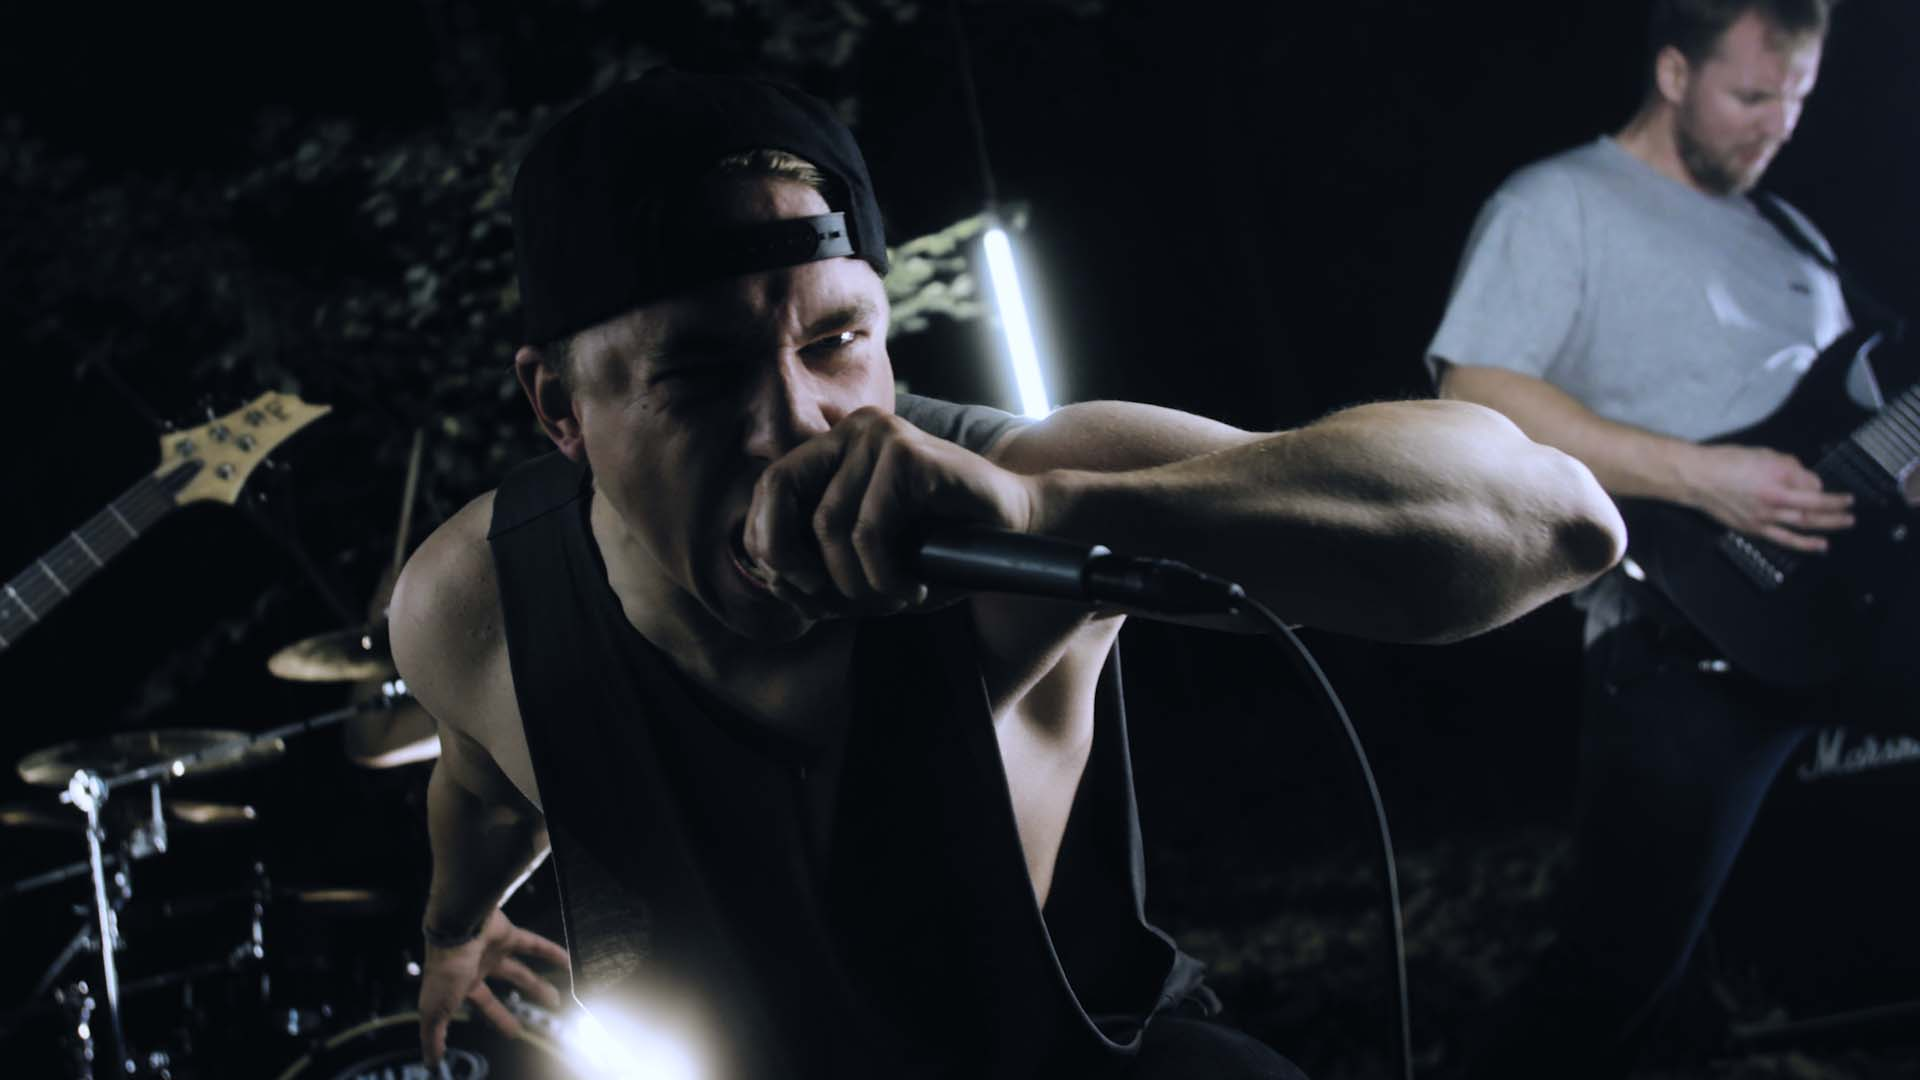 Through, Devastation, Black, Crows, Musikvideo, Musik, Video, Produktion, Metal, Rock, Hardcore, Erzgebirge, Animation, CGI, Sachsen, Chemnitz, Dresden